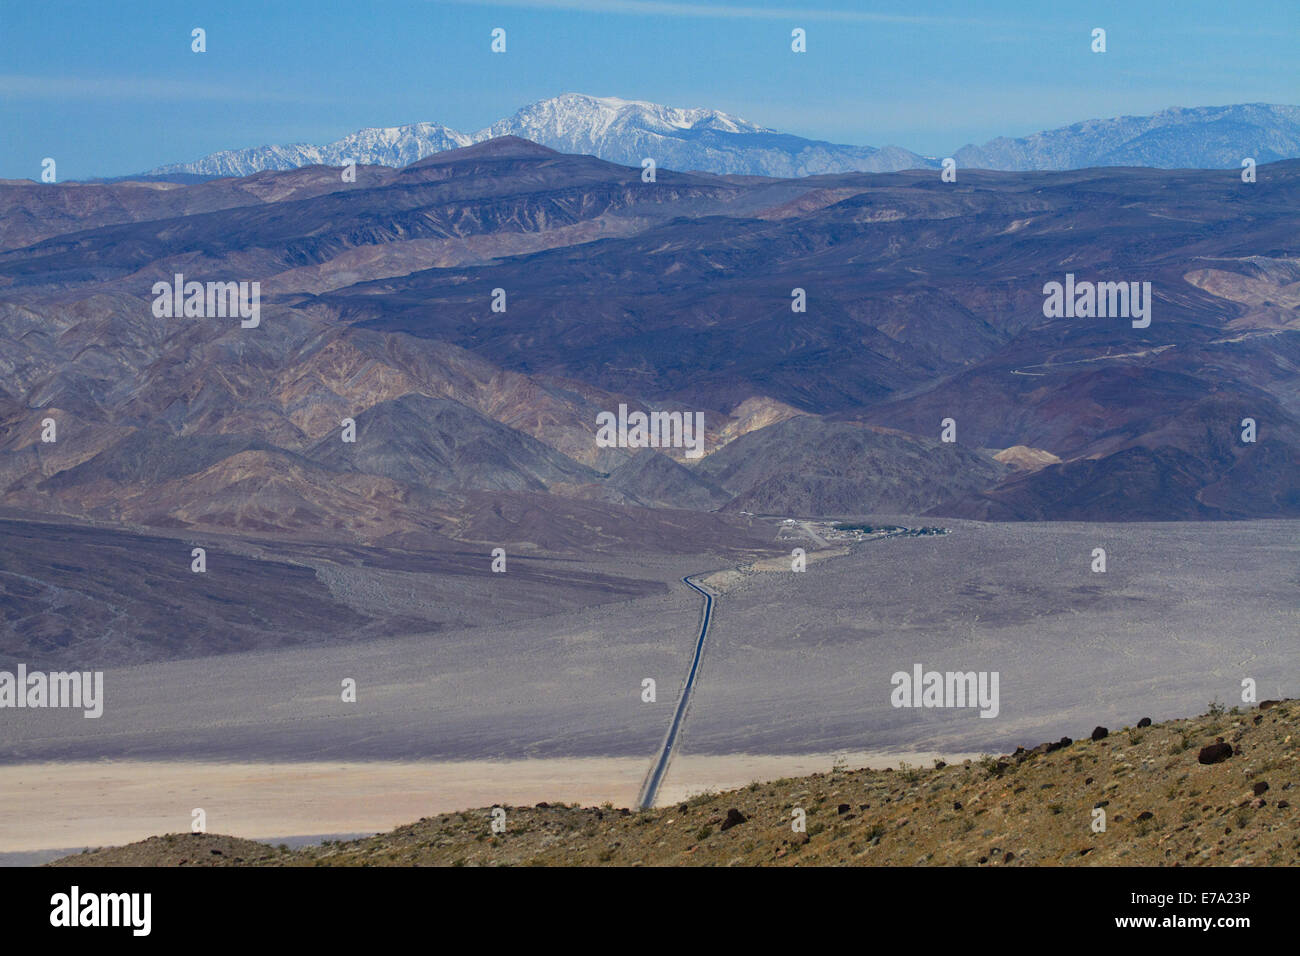 State Route 190 through Panamint Valley towards Panamint Springs, Death Valley National Park, Mojave Desert, with Darwin Hills a Stock Photo